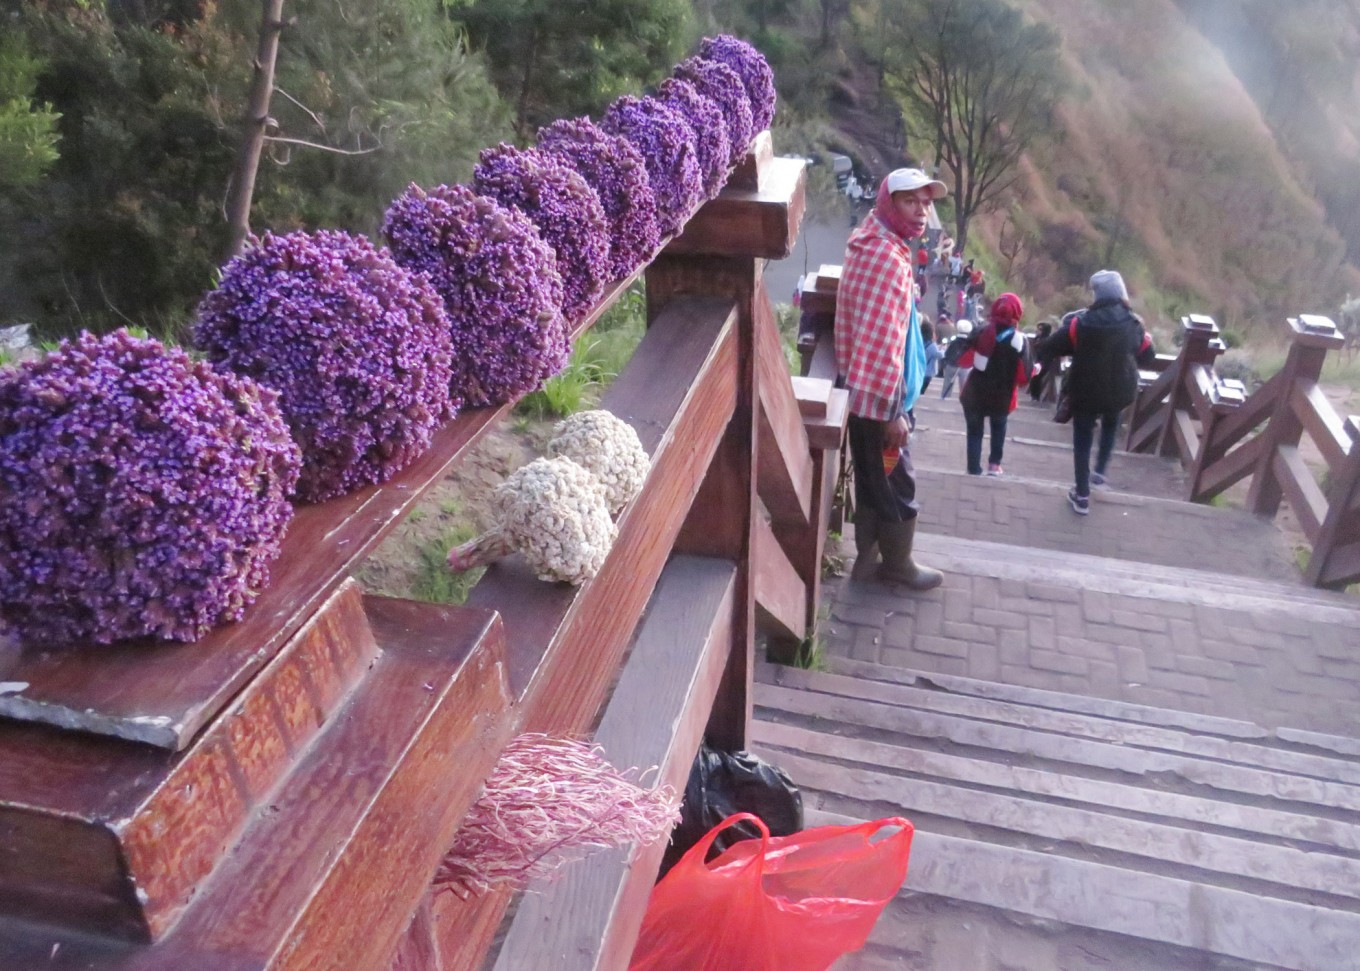 Edelwiss tourist villages to open in Bromo National Park